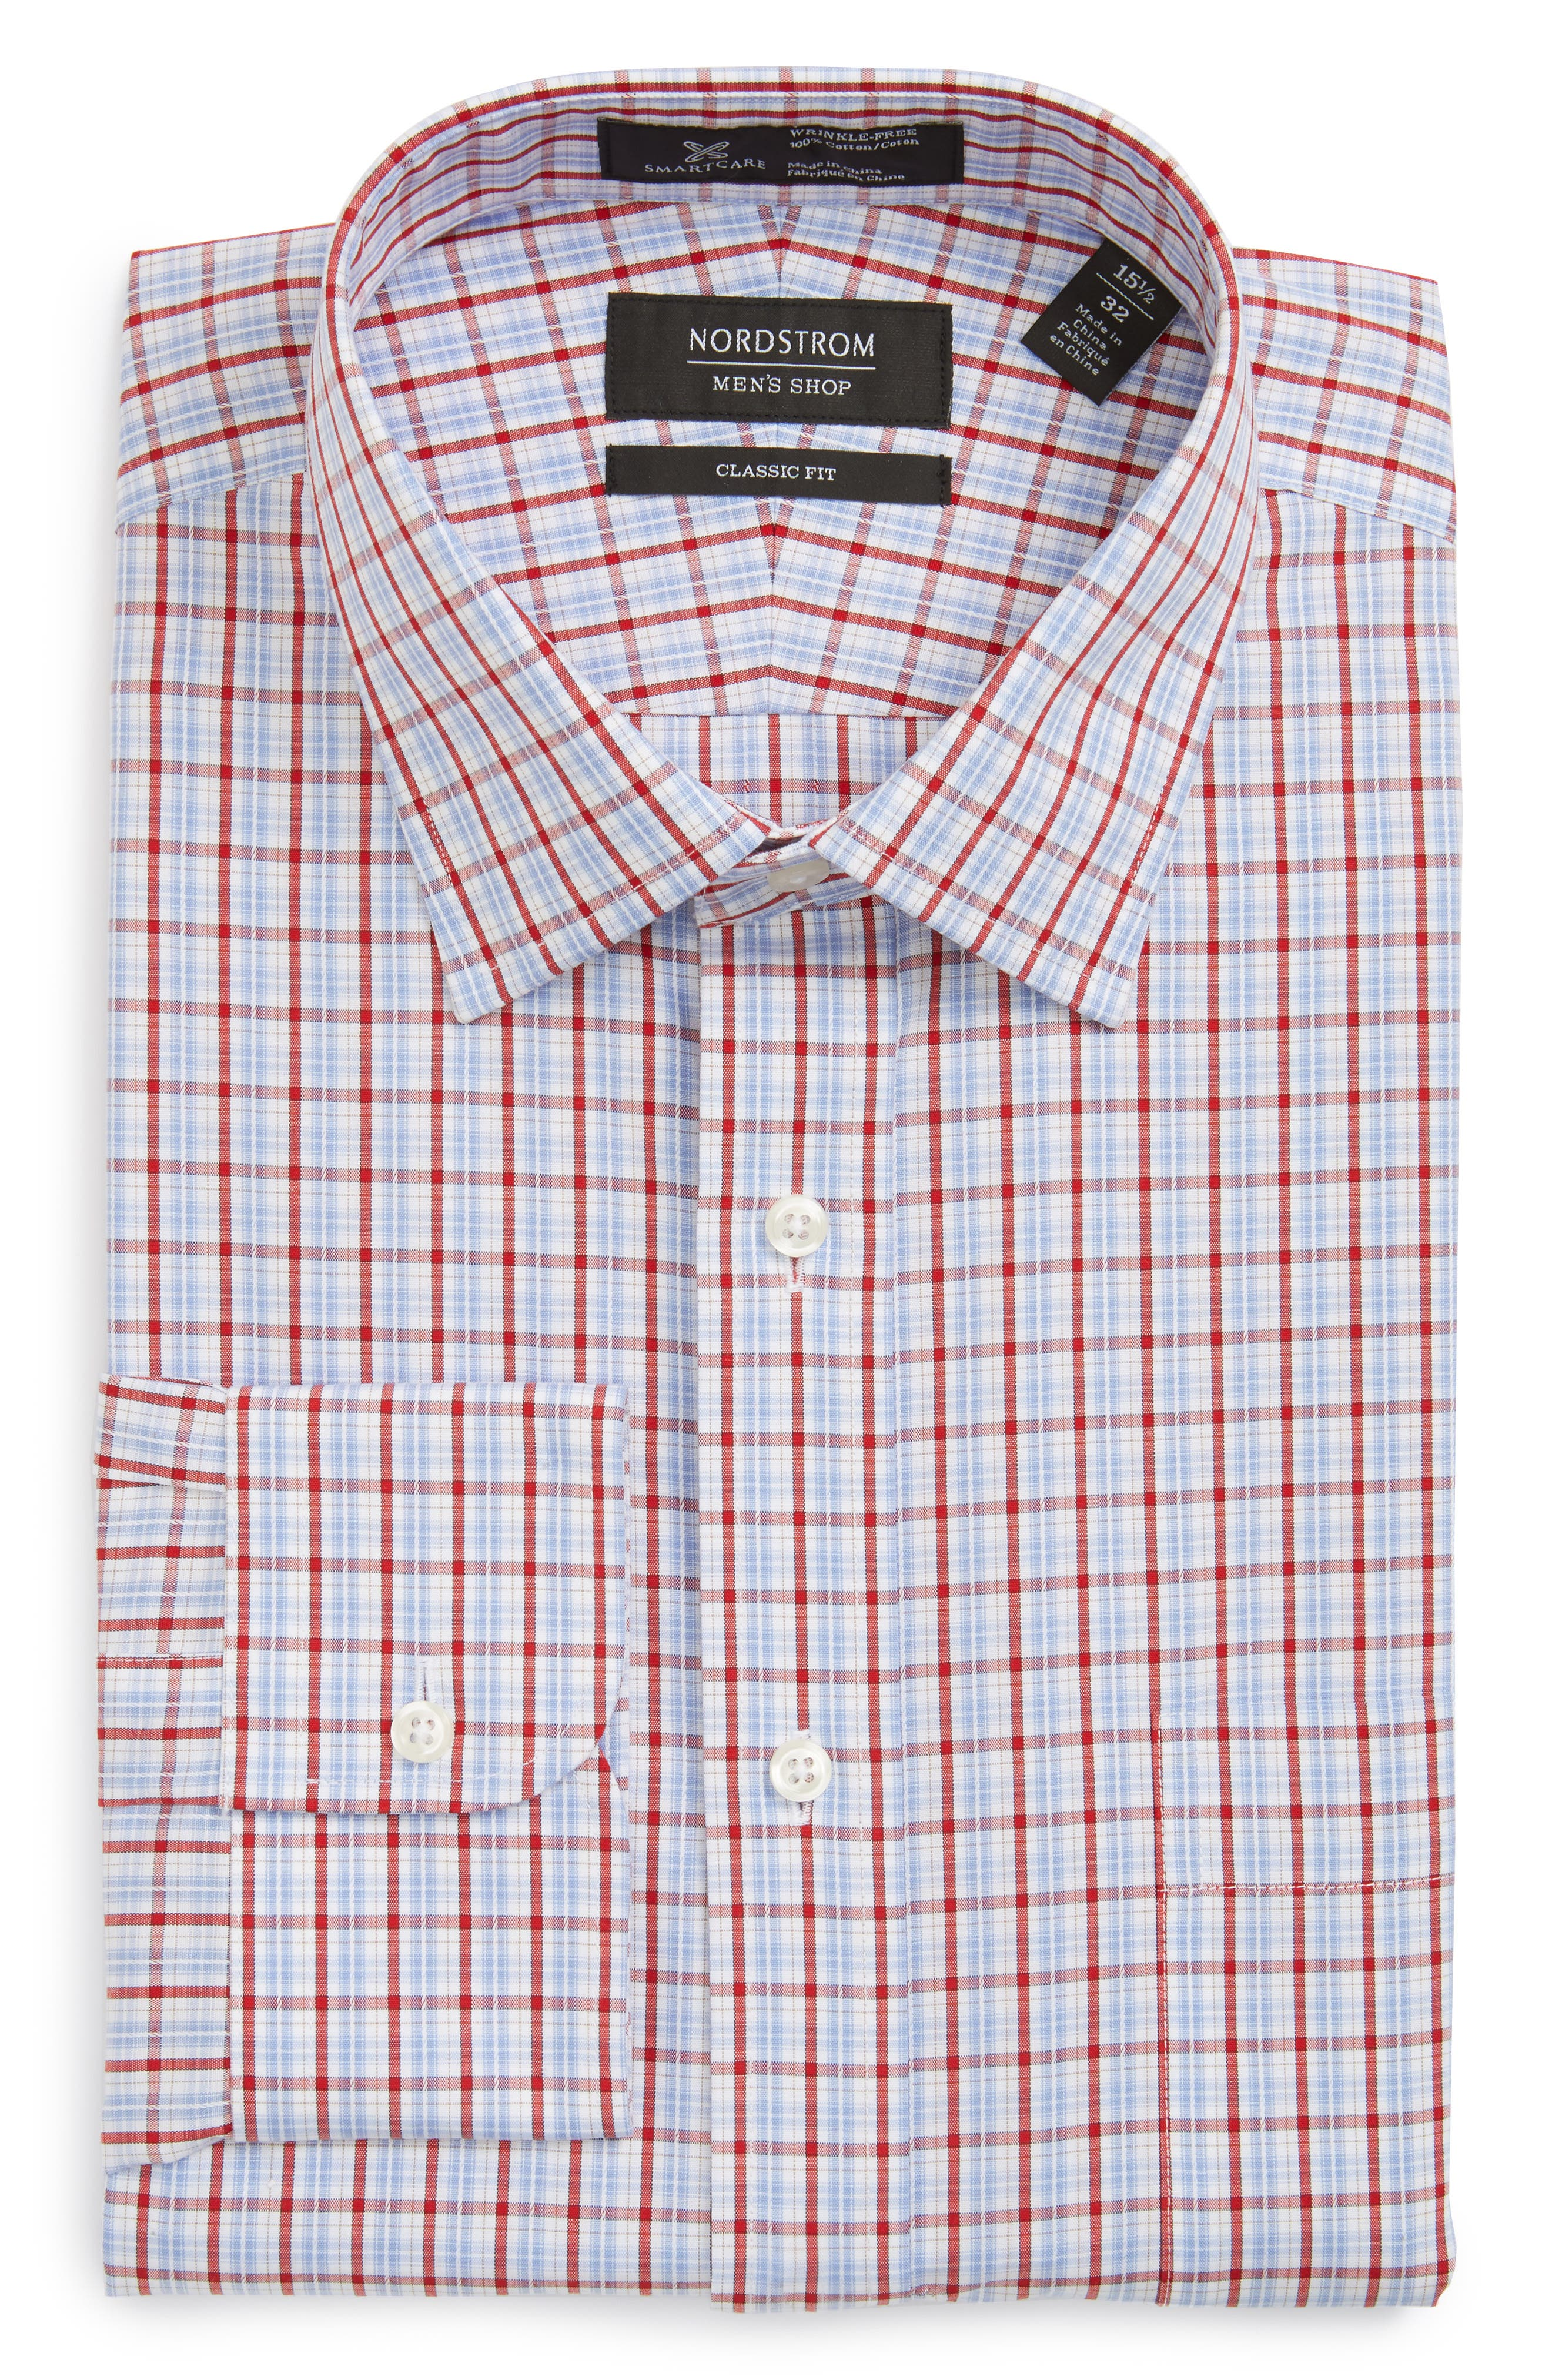 Nordstrom Men's Shop Smartcare™ Classic Fit Plaid Dress Shirt